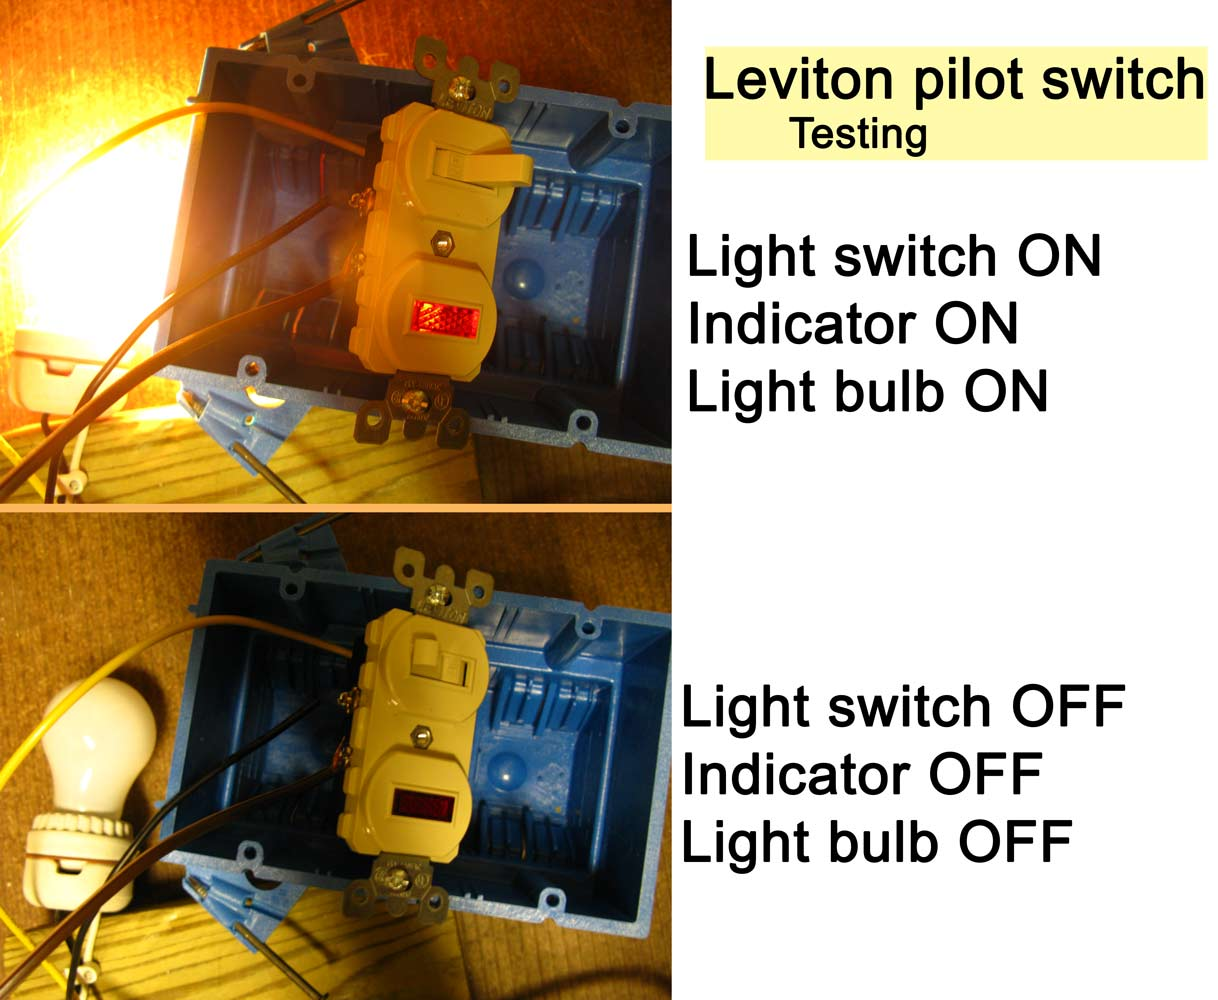 How To Wire Cooper 277 Pilot Light Switch 5 Way Wiring Diagram Leviton See Testing Photographs 1 2